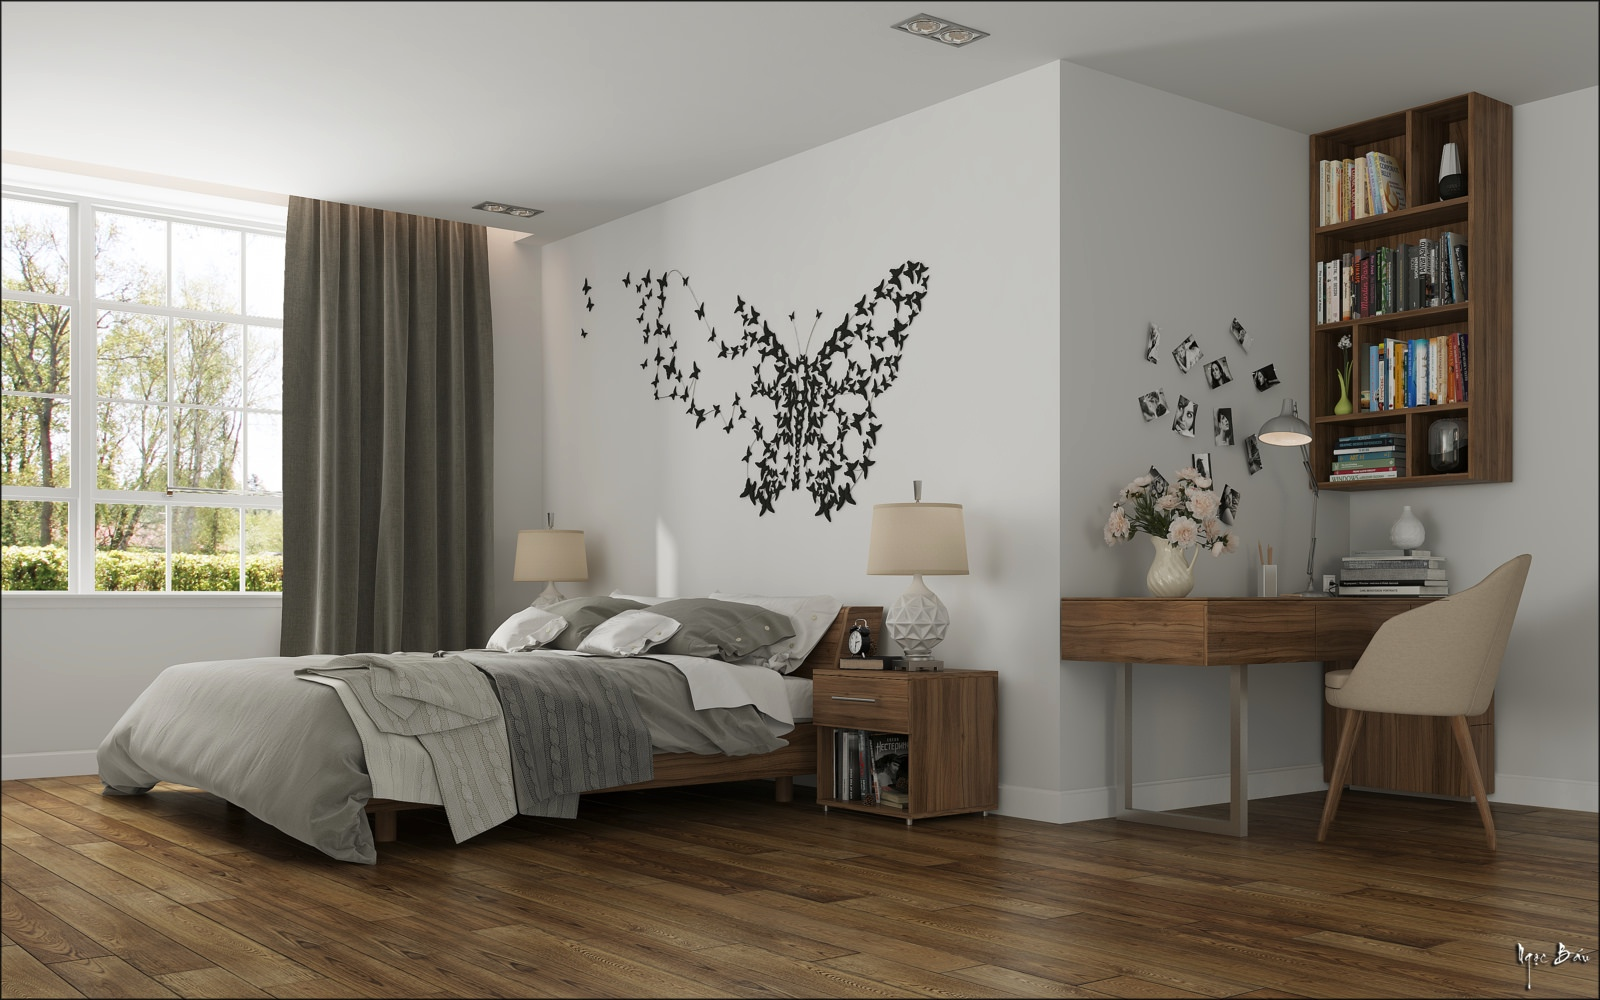 Bedroom butterfly wall art interior design ideas for Decoration murale pour chambre